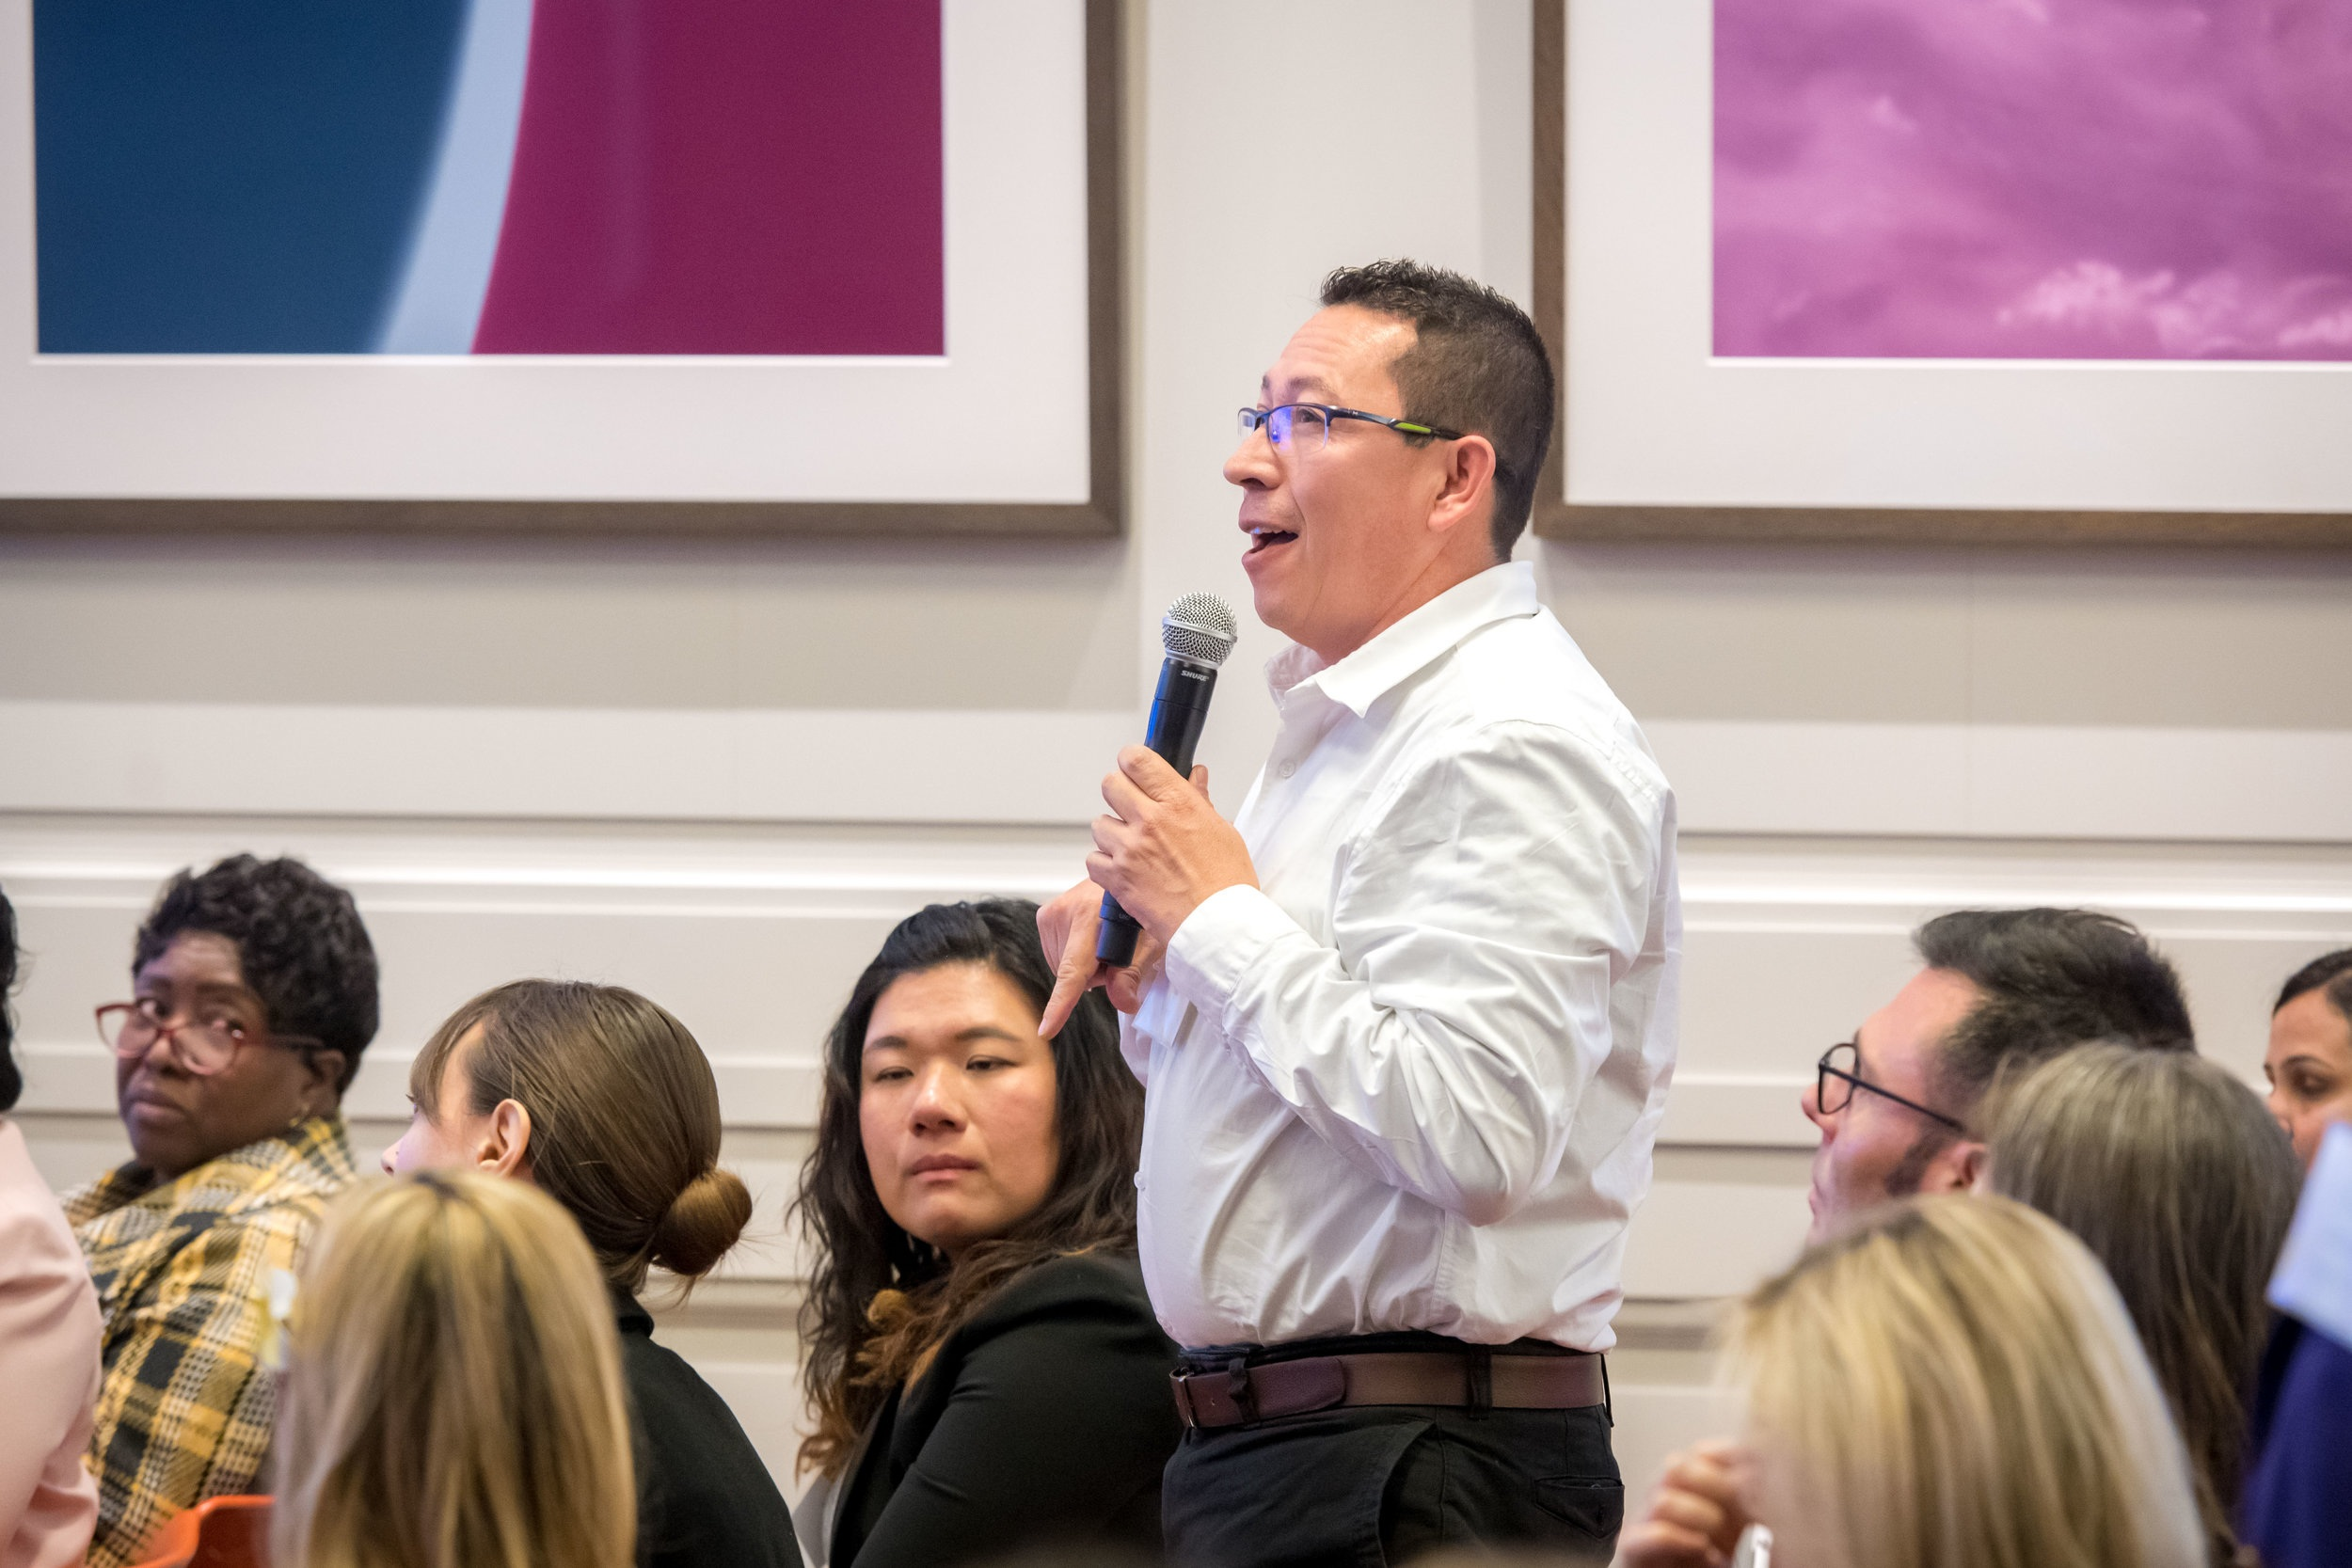 Educators from 32 cities gathered in New York City to discuss global digital education